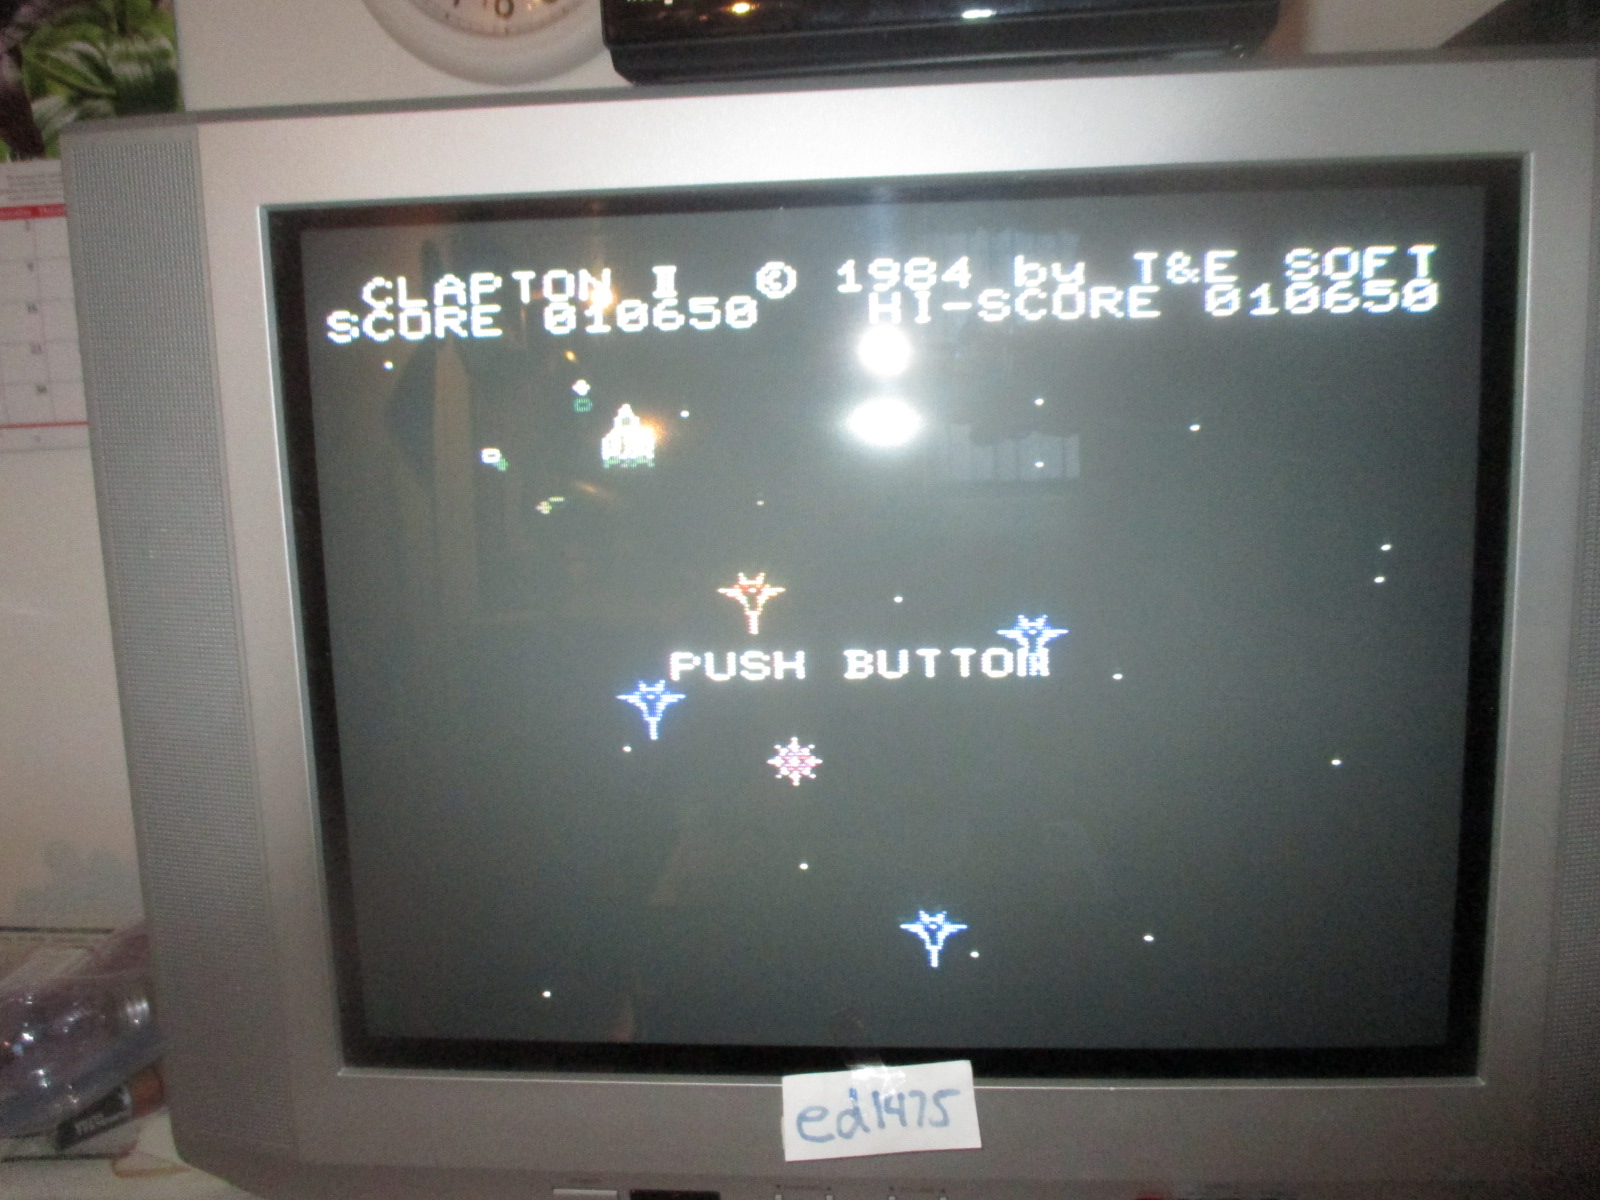 ed1475: Battleship Clapton II (Colecovision) 10,650 points on 2014-07-21 21:47:42